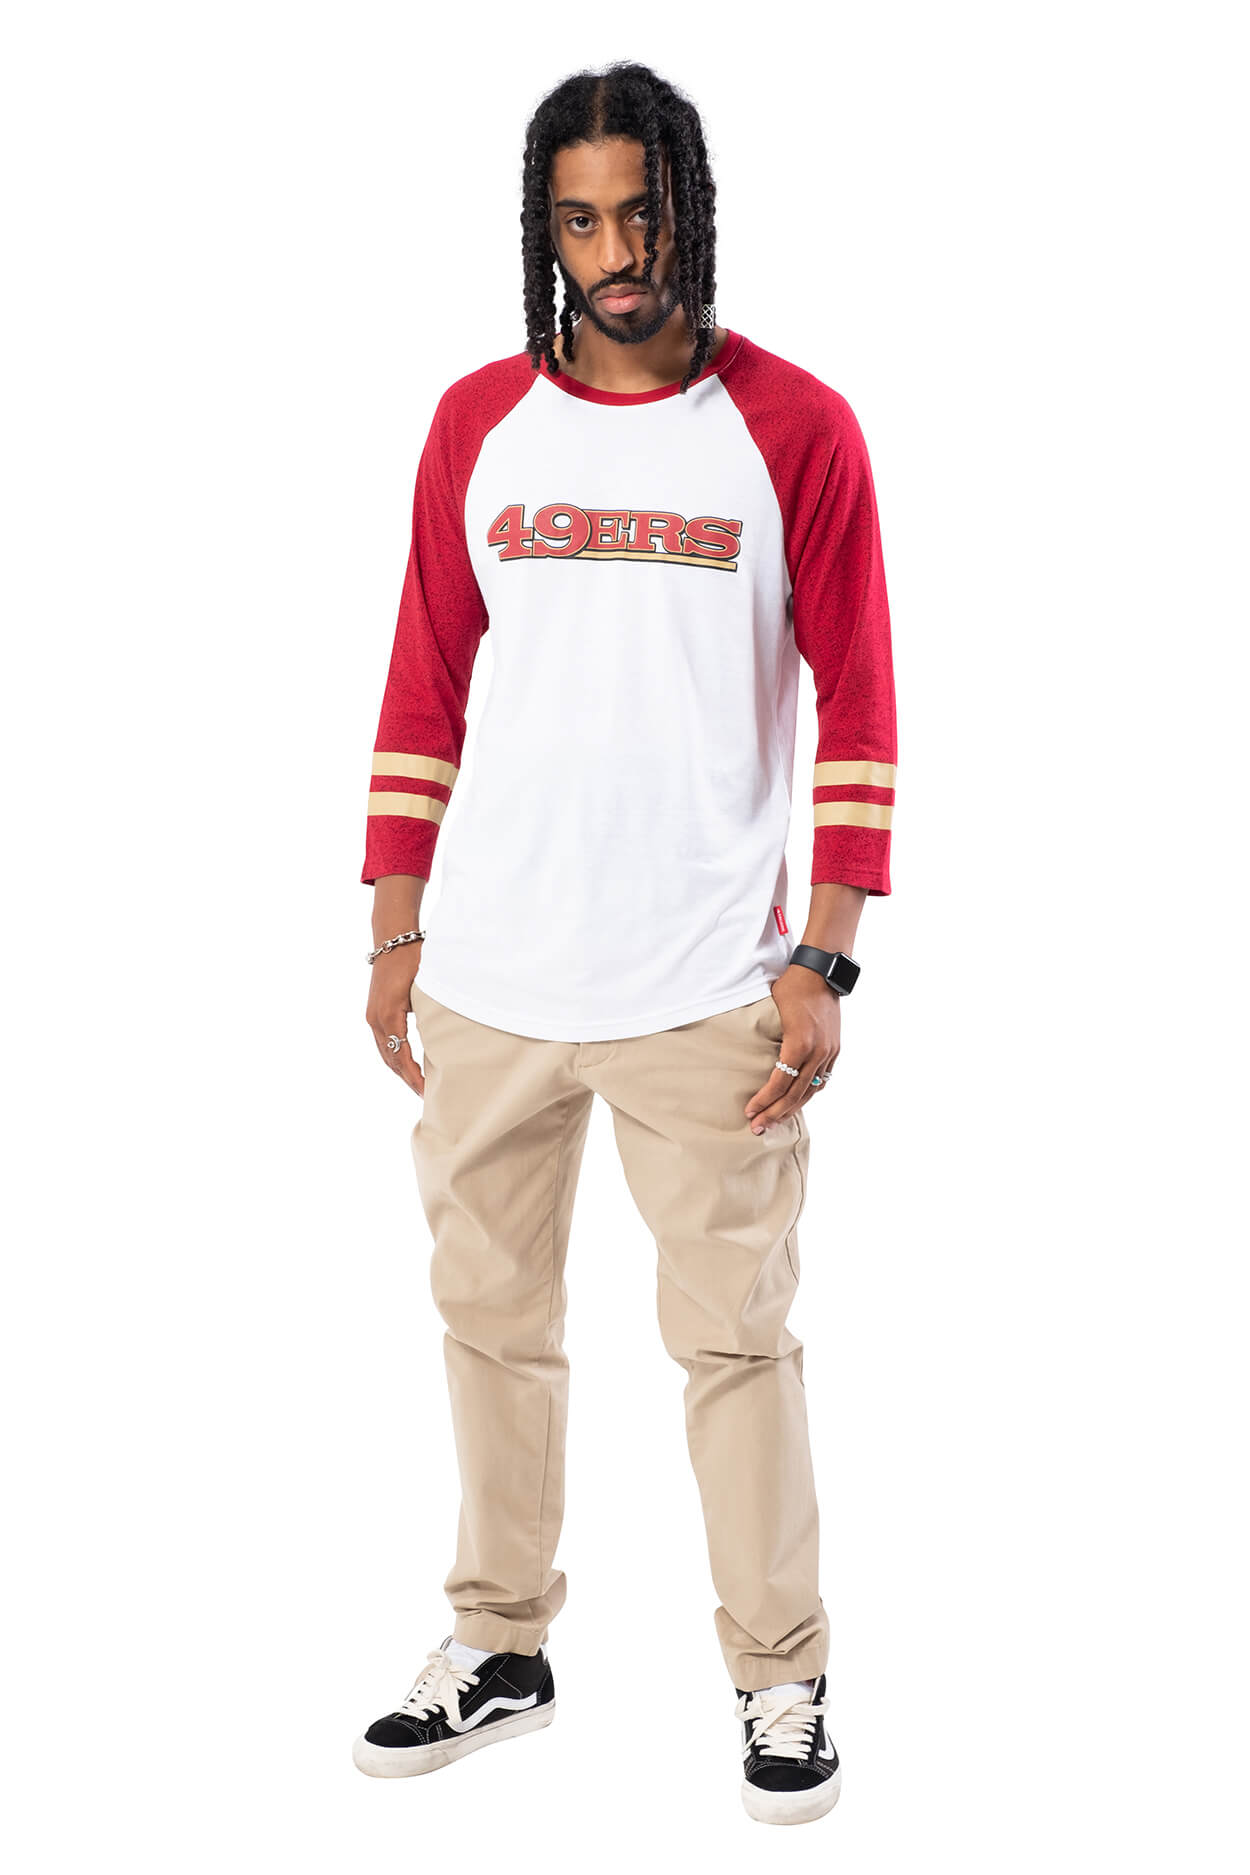 NFL San Francisco 49ers Men's Baseball Tee|San Francisco 49ers